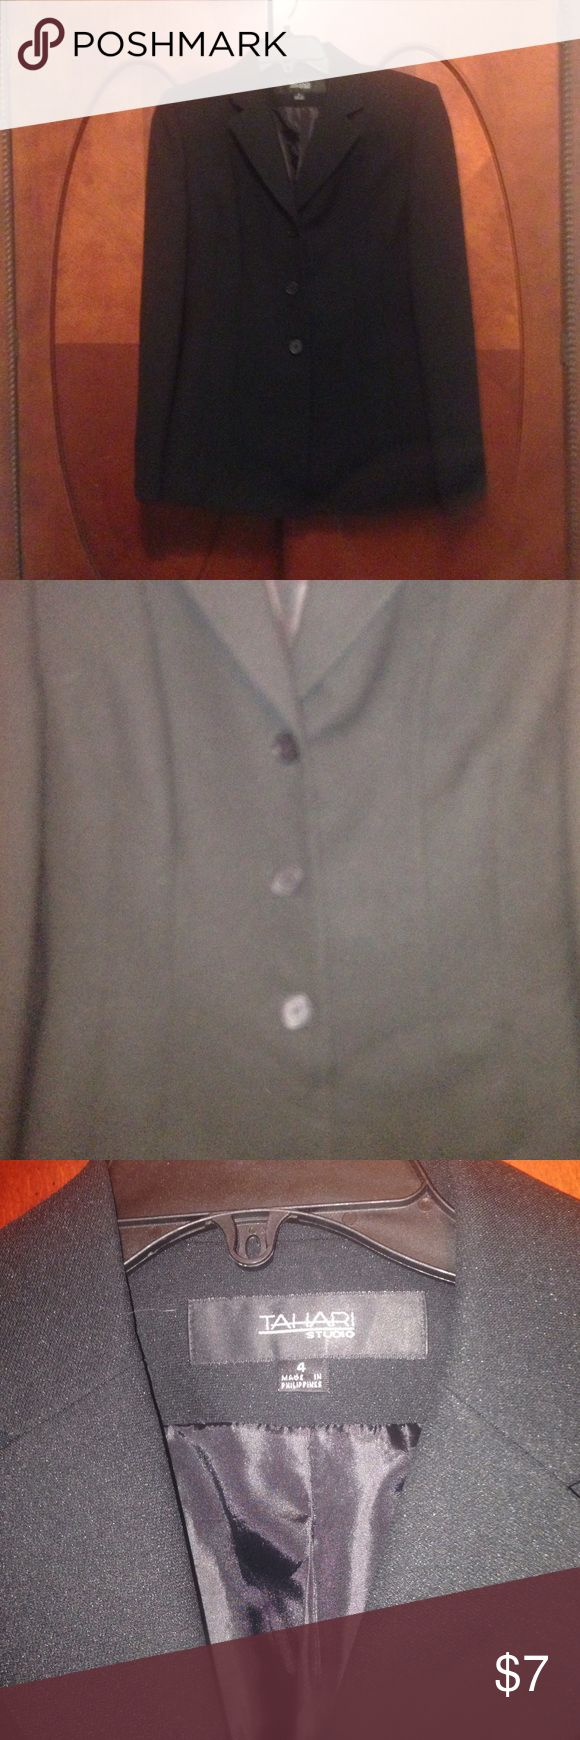 Black suit jacket Size 4 Black suit jacket Size 4 worn once excellent condition Tahari Woman Jackets & Coats Blazers